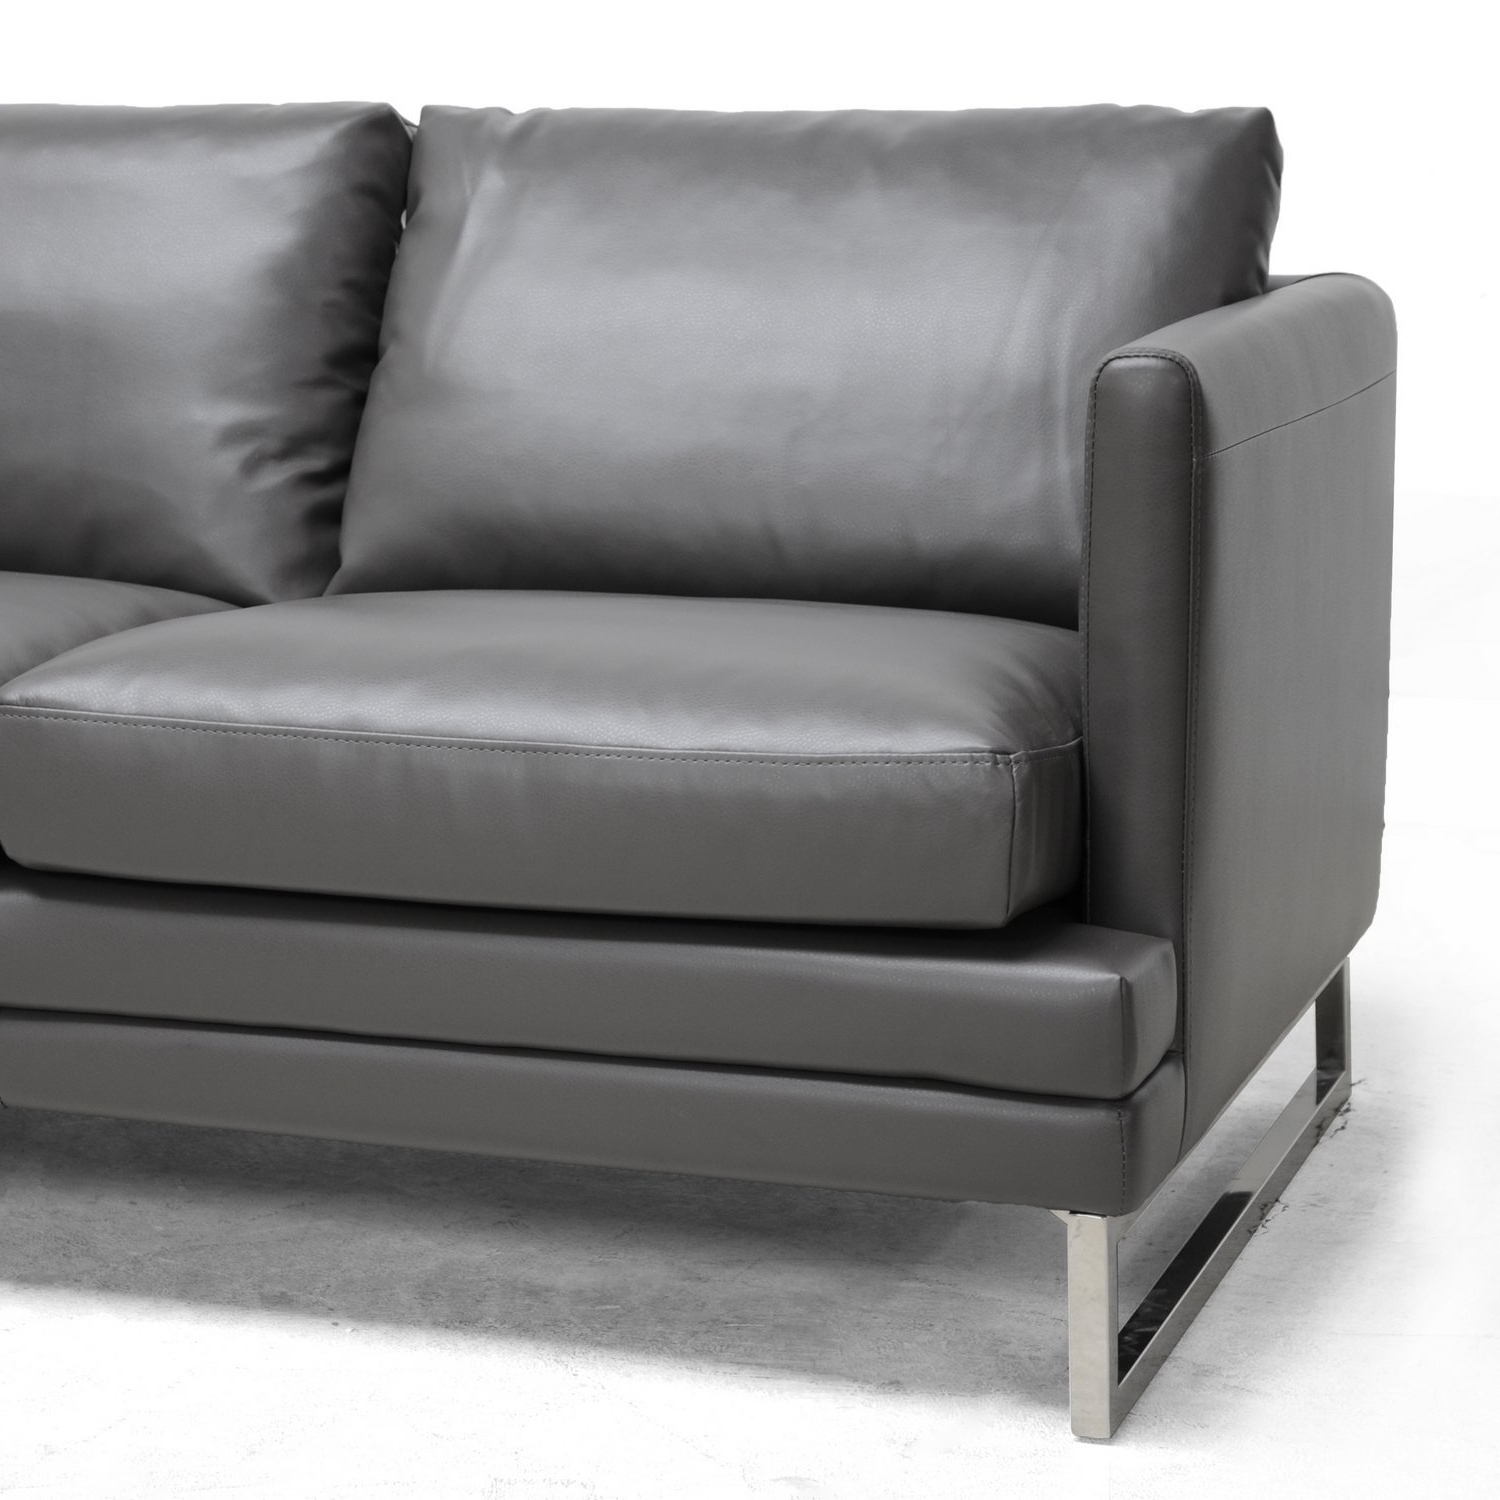 Favorite High Point Nc Sectional Sofas In Contemporary Leather Sofas Italian Sofa Uk Modern Furniture High (View 2 of 15)